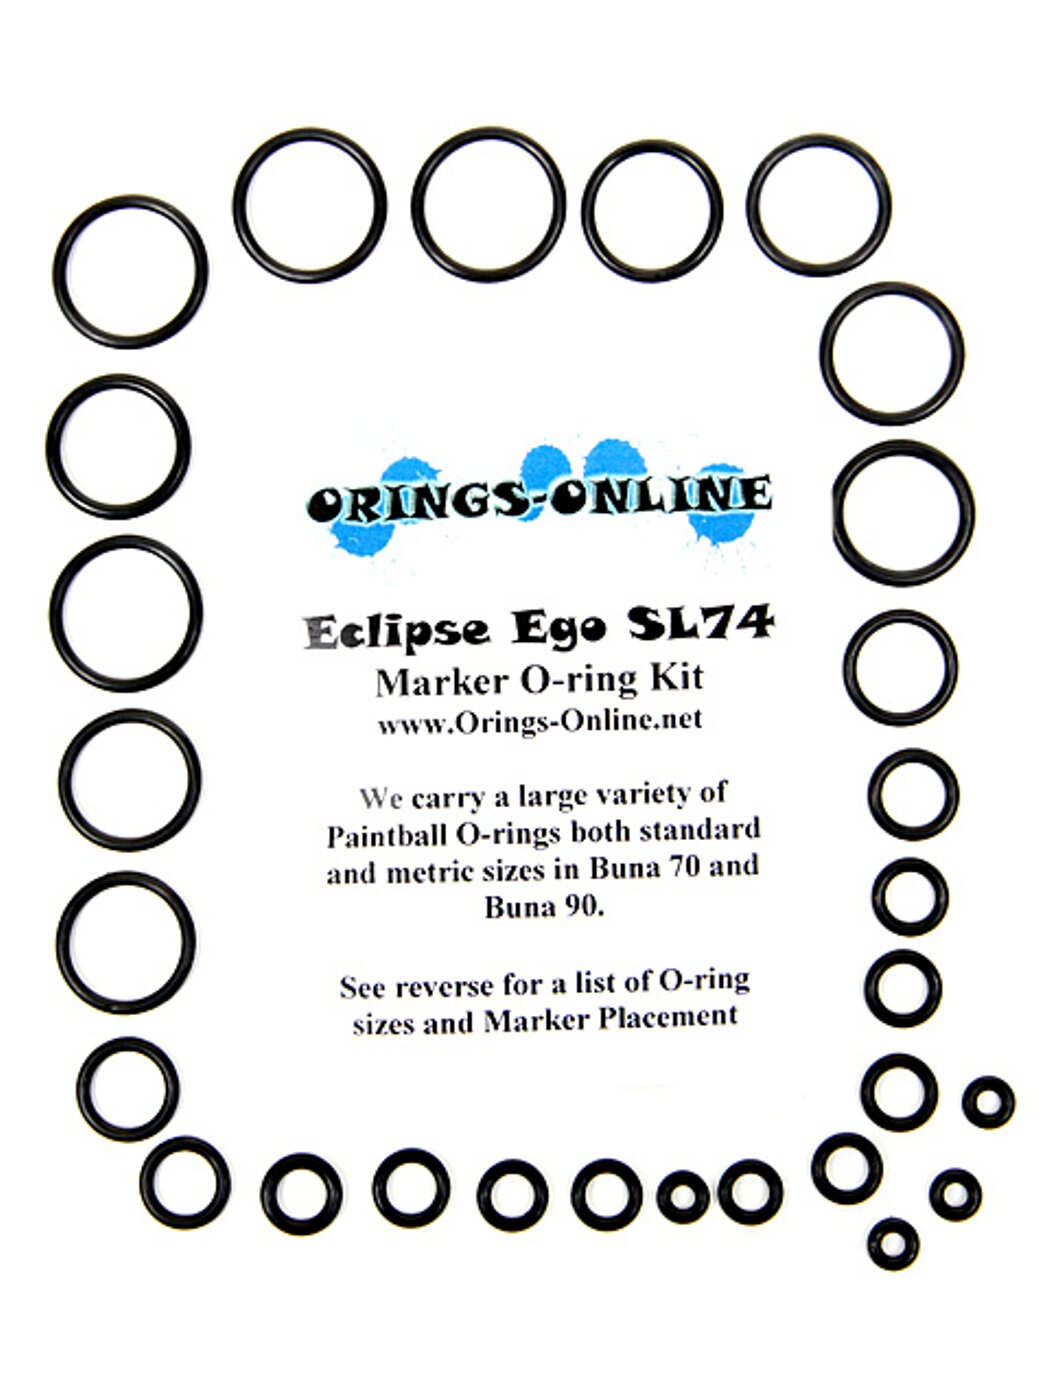 Planet Eclipse Ego SL74 Marker O-ring Kit